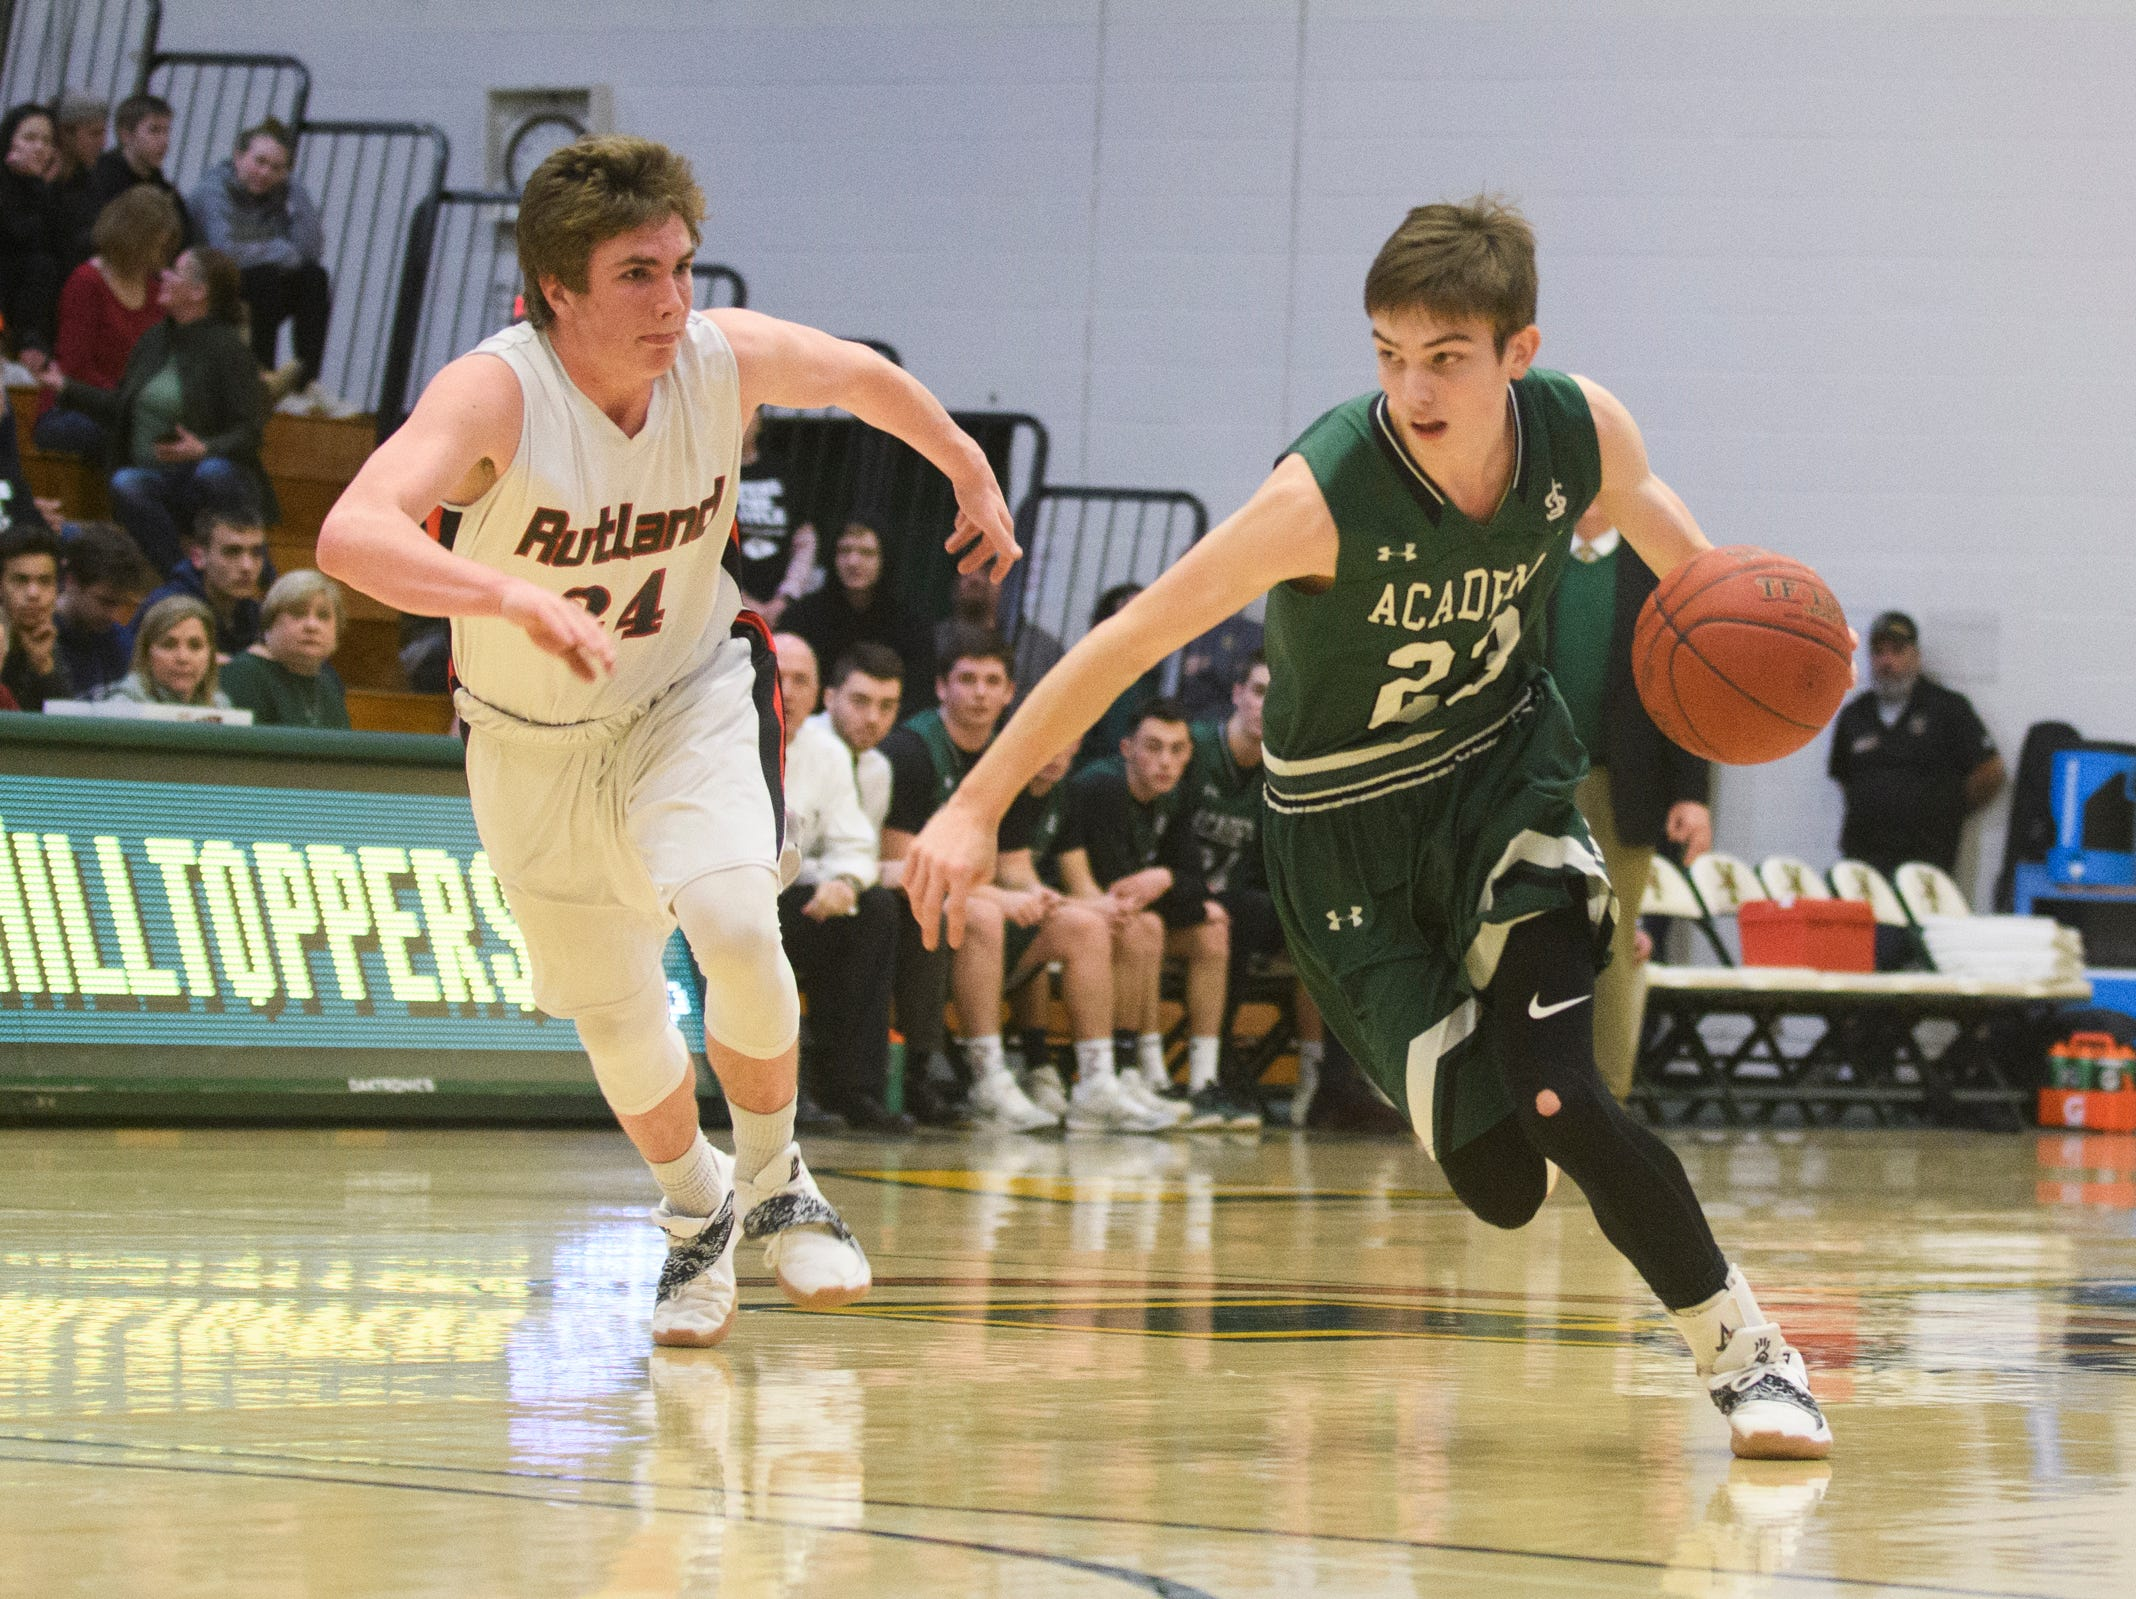 St. Johnsbury's Logan Wendell (23) drives to the hoop past Rutland's Jacob Lorman (24) during the DI boys basketball championship game between the St. Johnsbury Hilltoppers and the Rutland Raiders at Patrick Gym on Sunday afternoon March 17, 2019 in Burlington, Vermont.